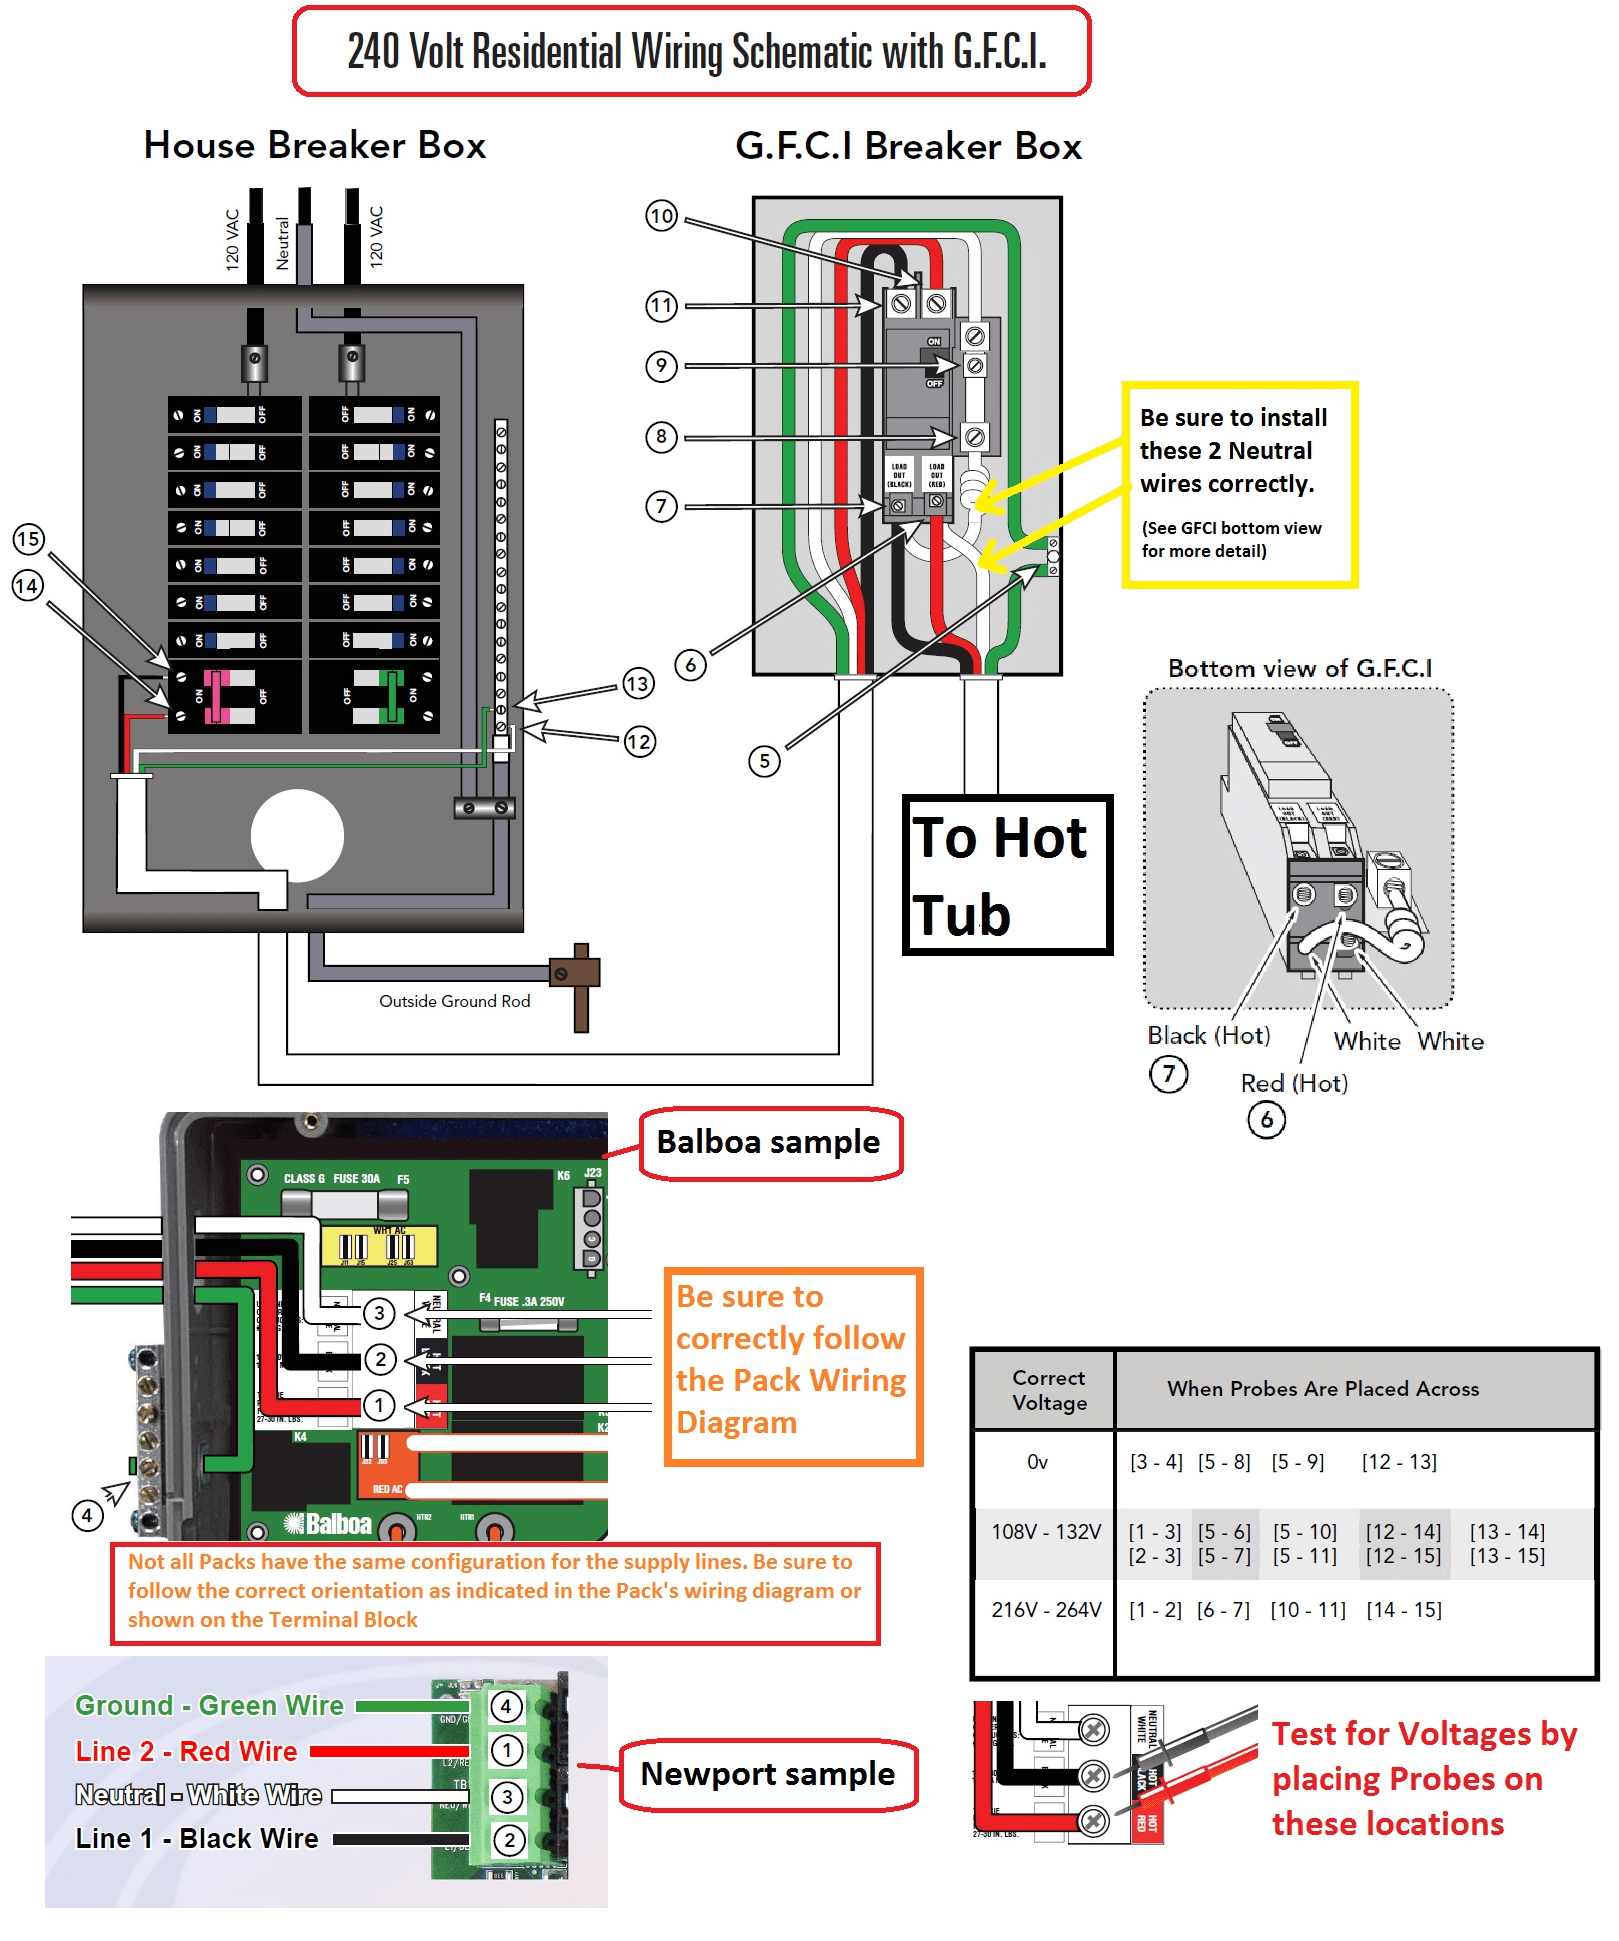 jacuzzi electrical wiring wiring diagram operations jacuzzi electrical wiring [ 1619 x 1941 Pixel ]